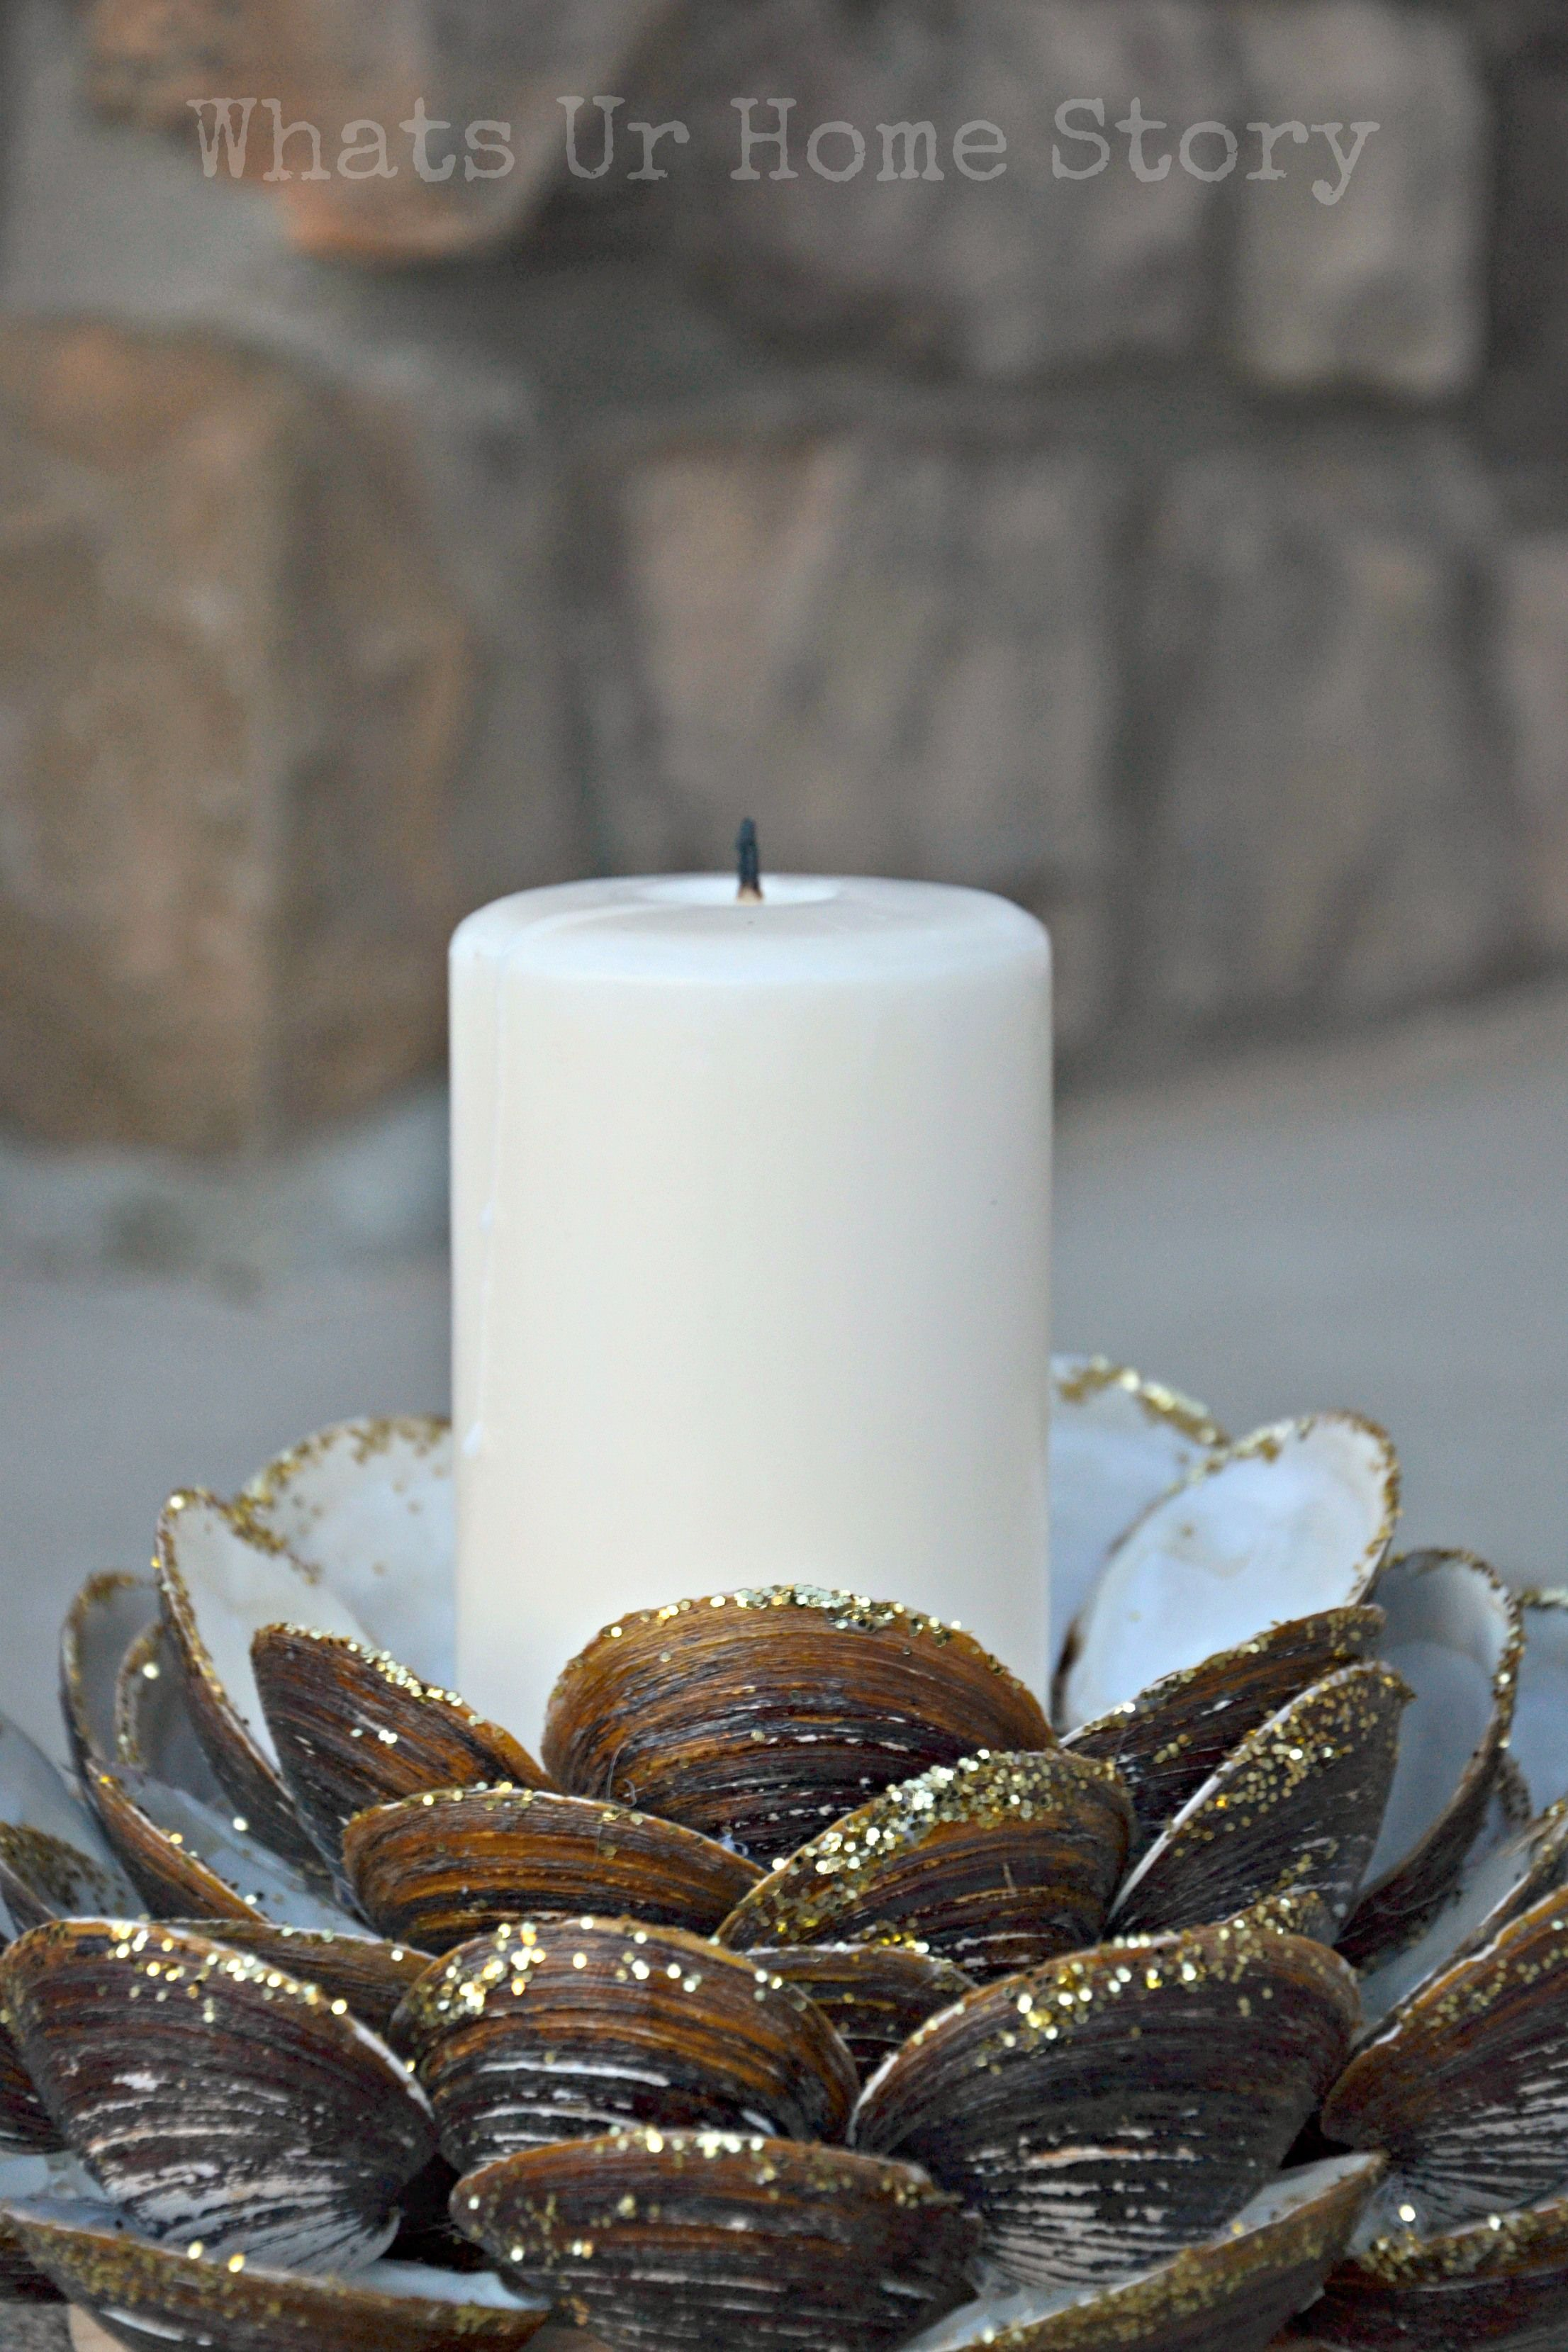 Seashore lovers, take note: A teensy bit of glitter on the edge of shells adds just enough pop to an otherwise muted seashell centerpiece.